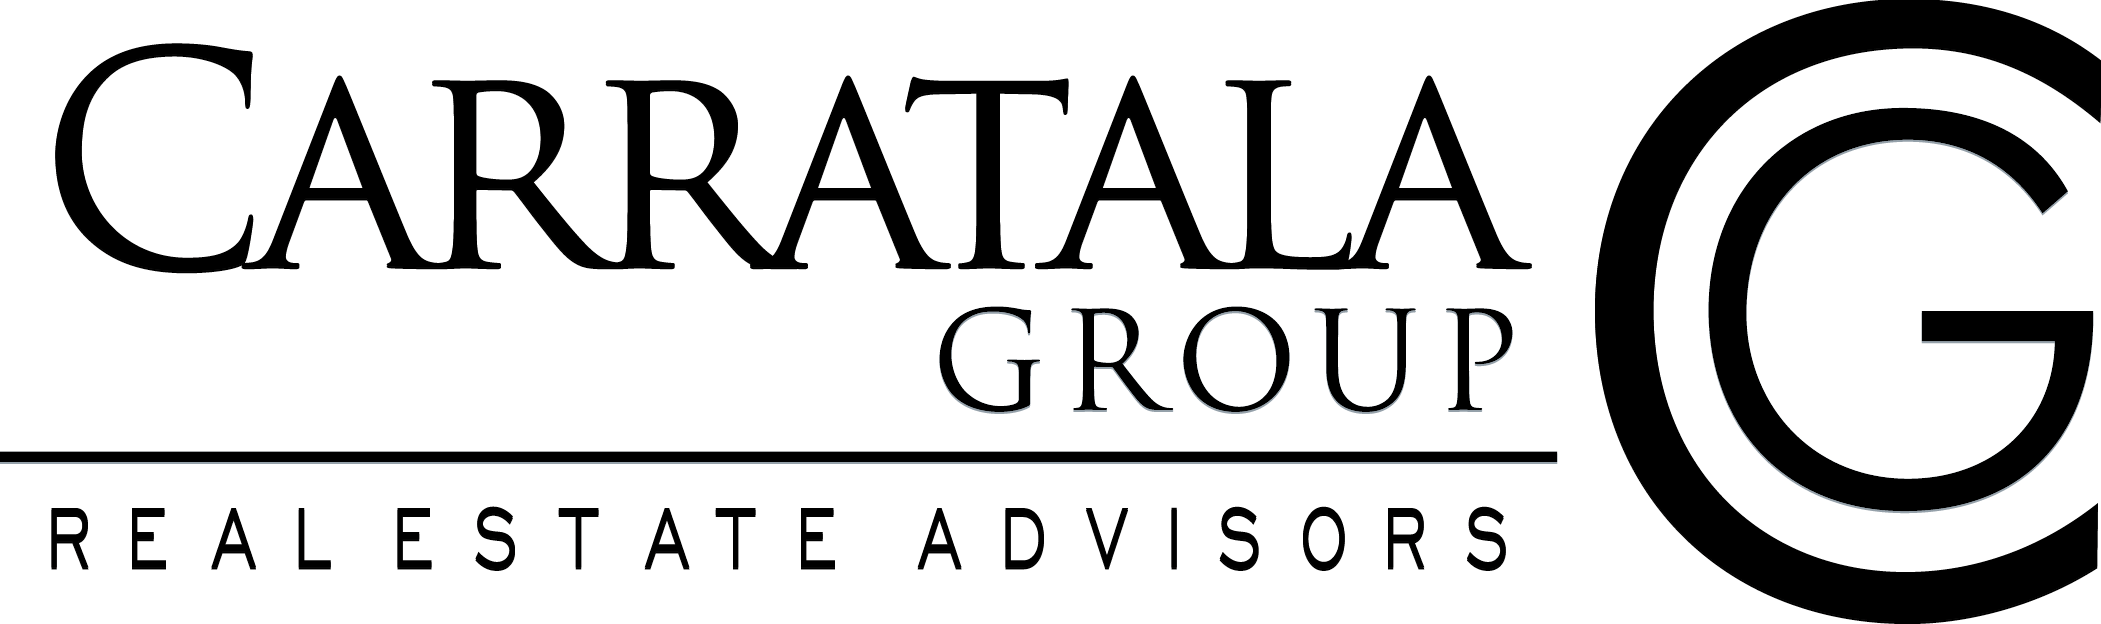 Carratala Group